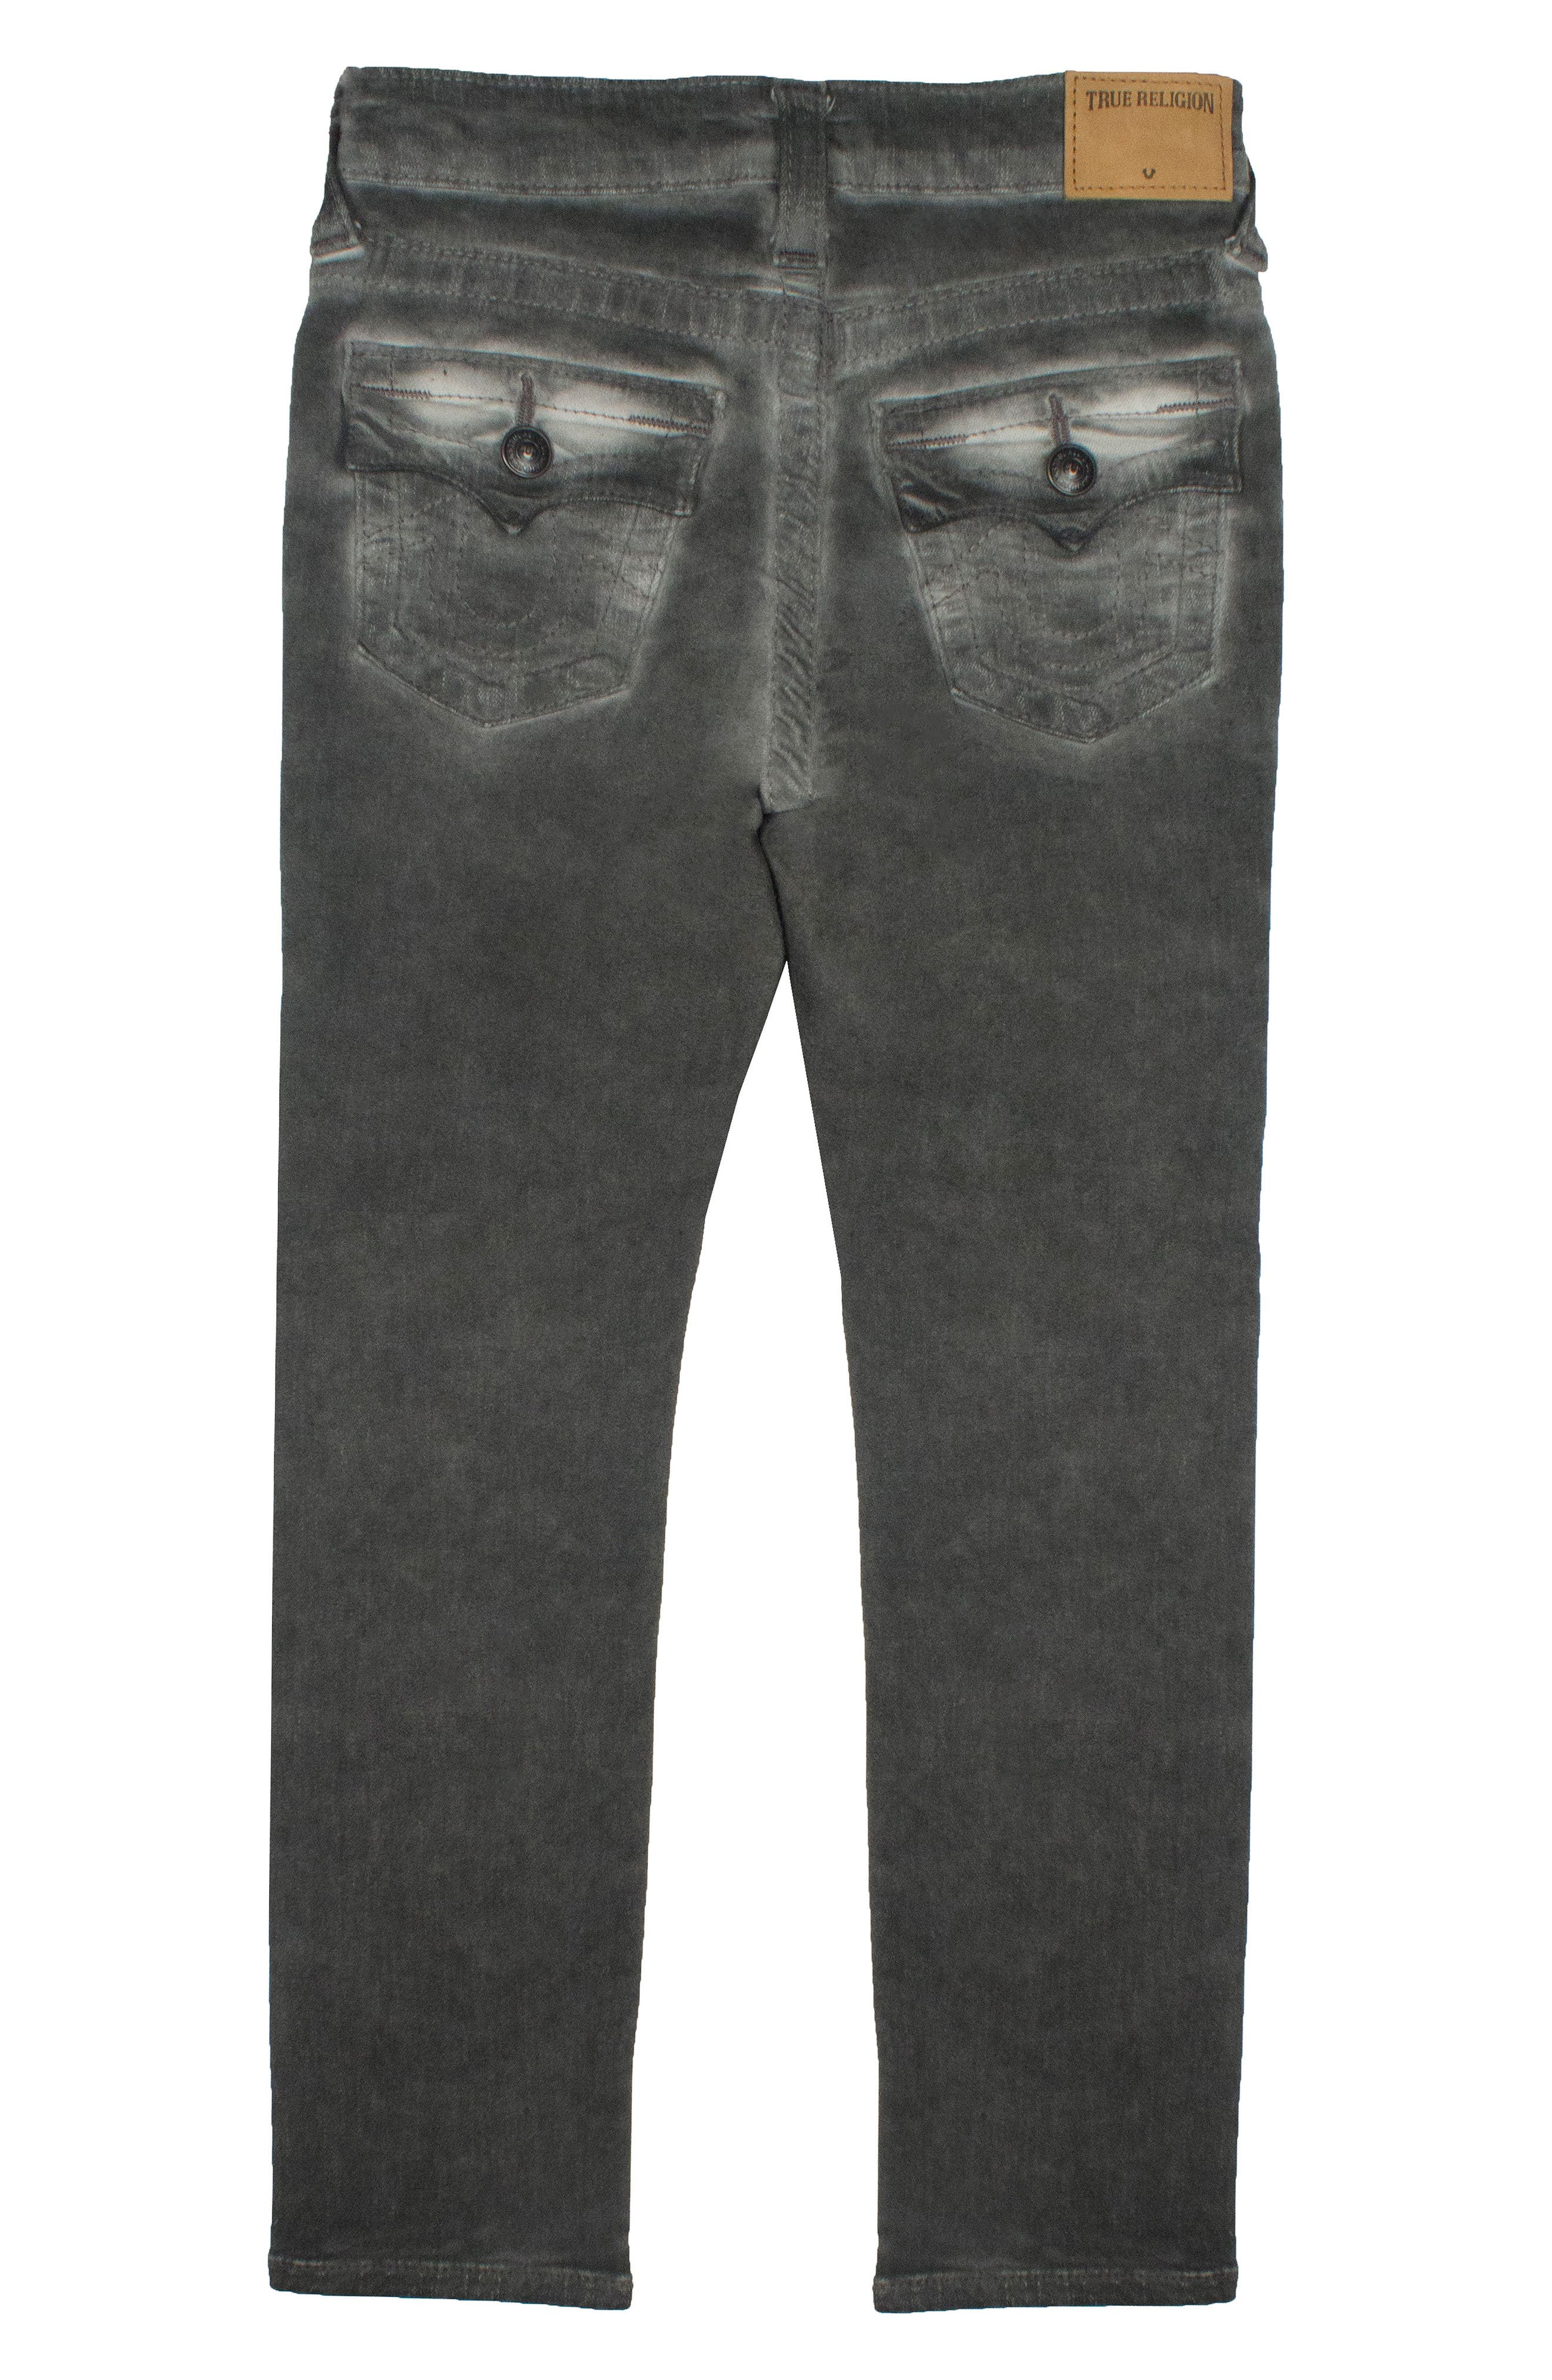 Rocco Single End Jeans,                             Alternate thumbnail 2, color,                             Grey Patched